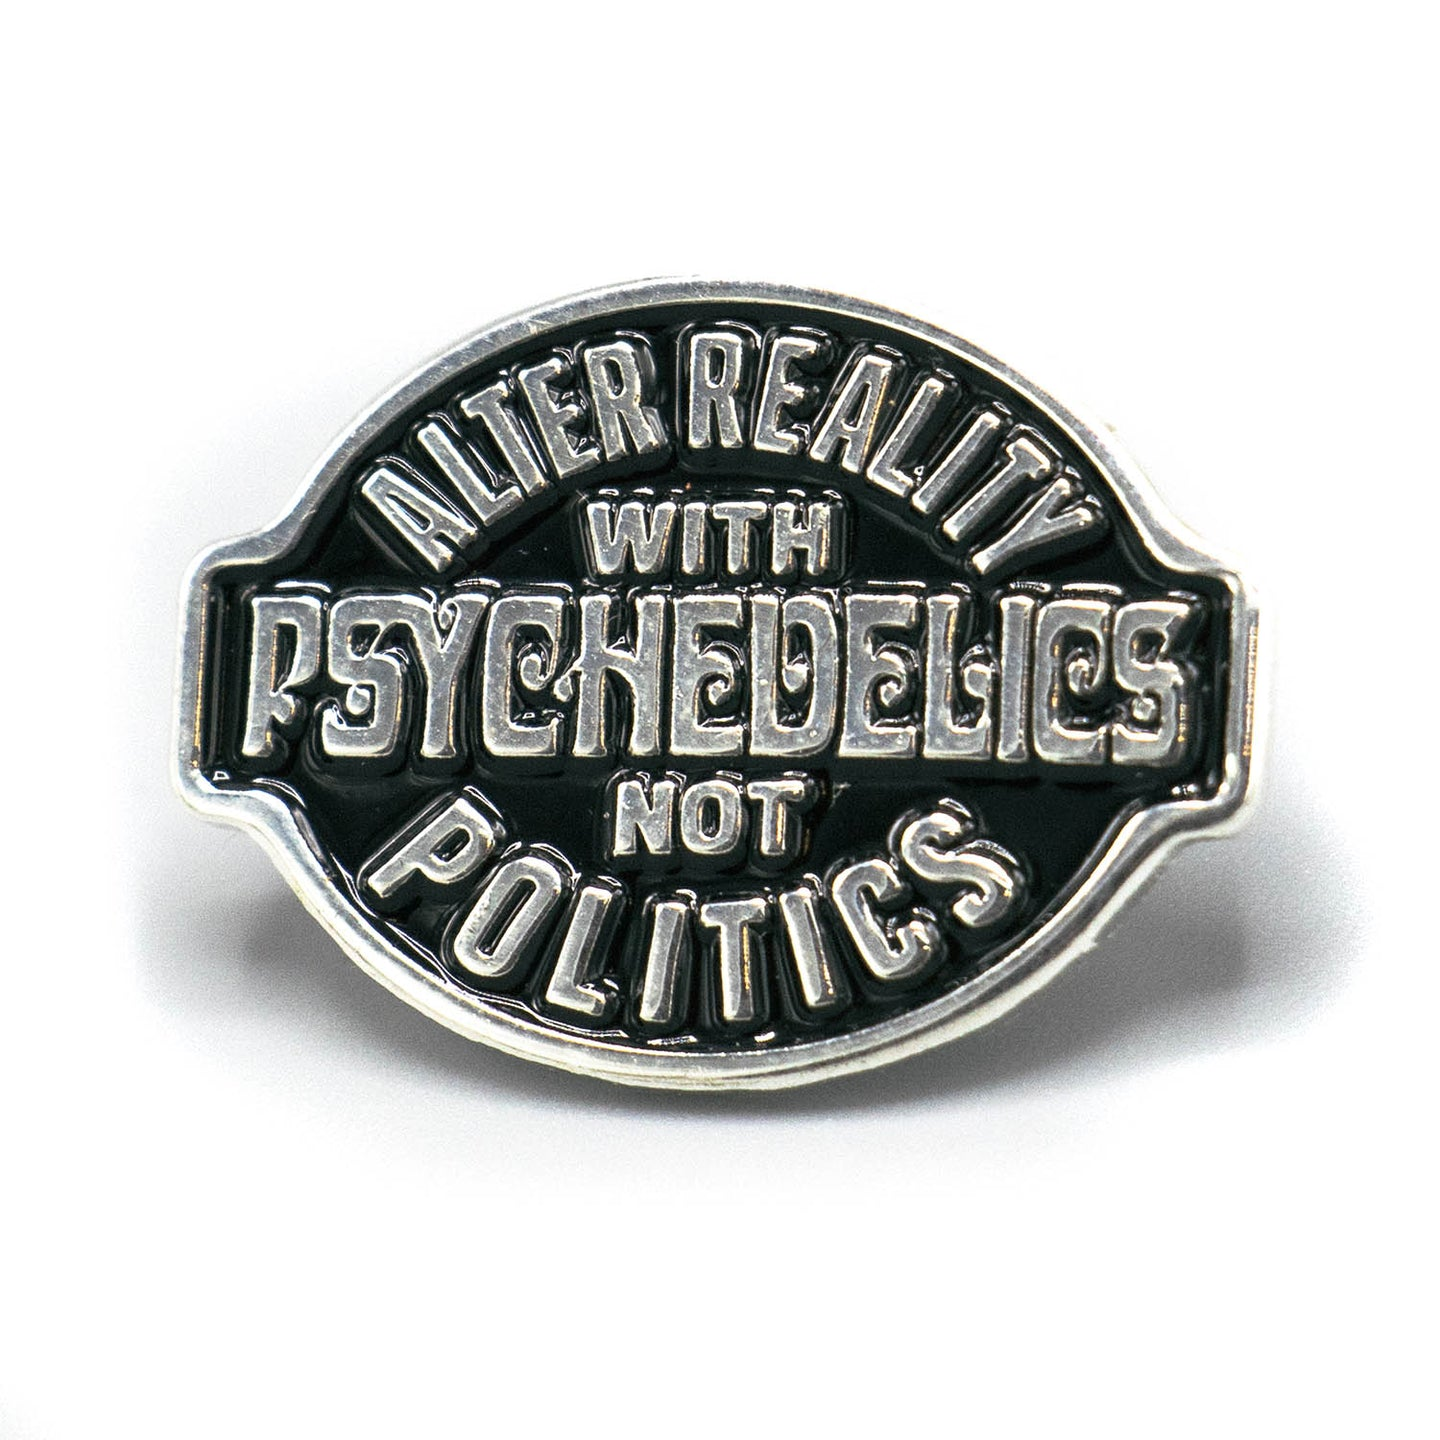 ALTER REALITY PIN - CENTRAL HIGH - OTHER CENTRAL HIGH BRAND